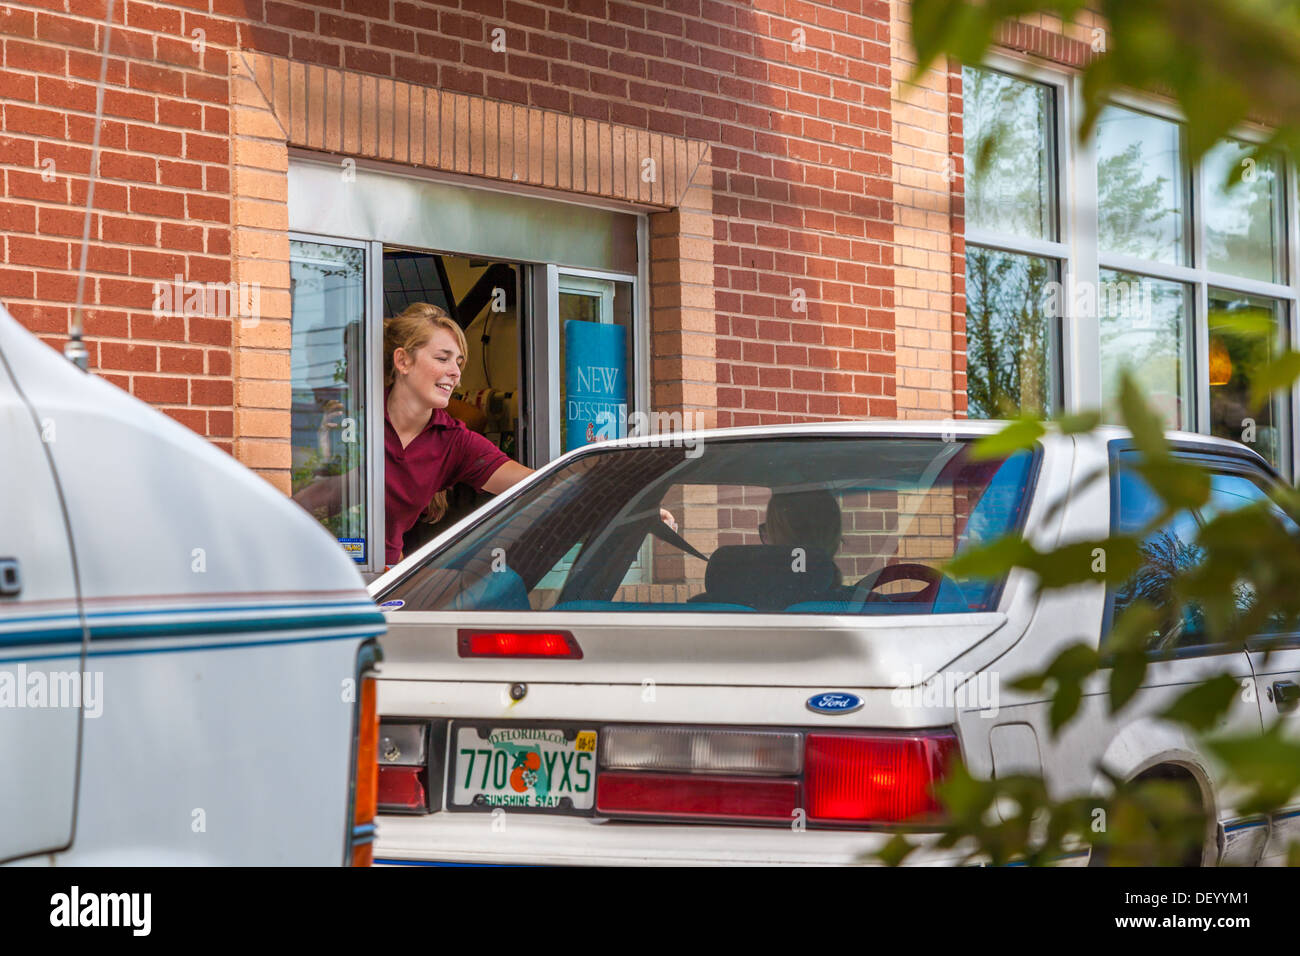 Cars at the drive through window at the Chick-fil-a fast food restaurant in Ocala, Florida in support of Christian values - Stock Image